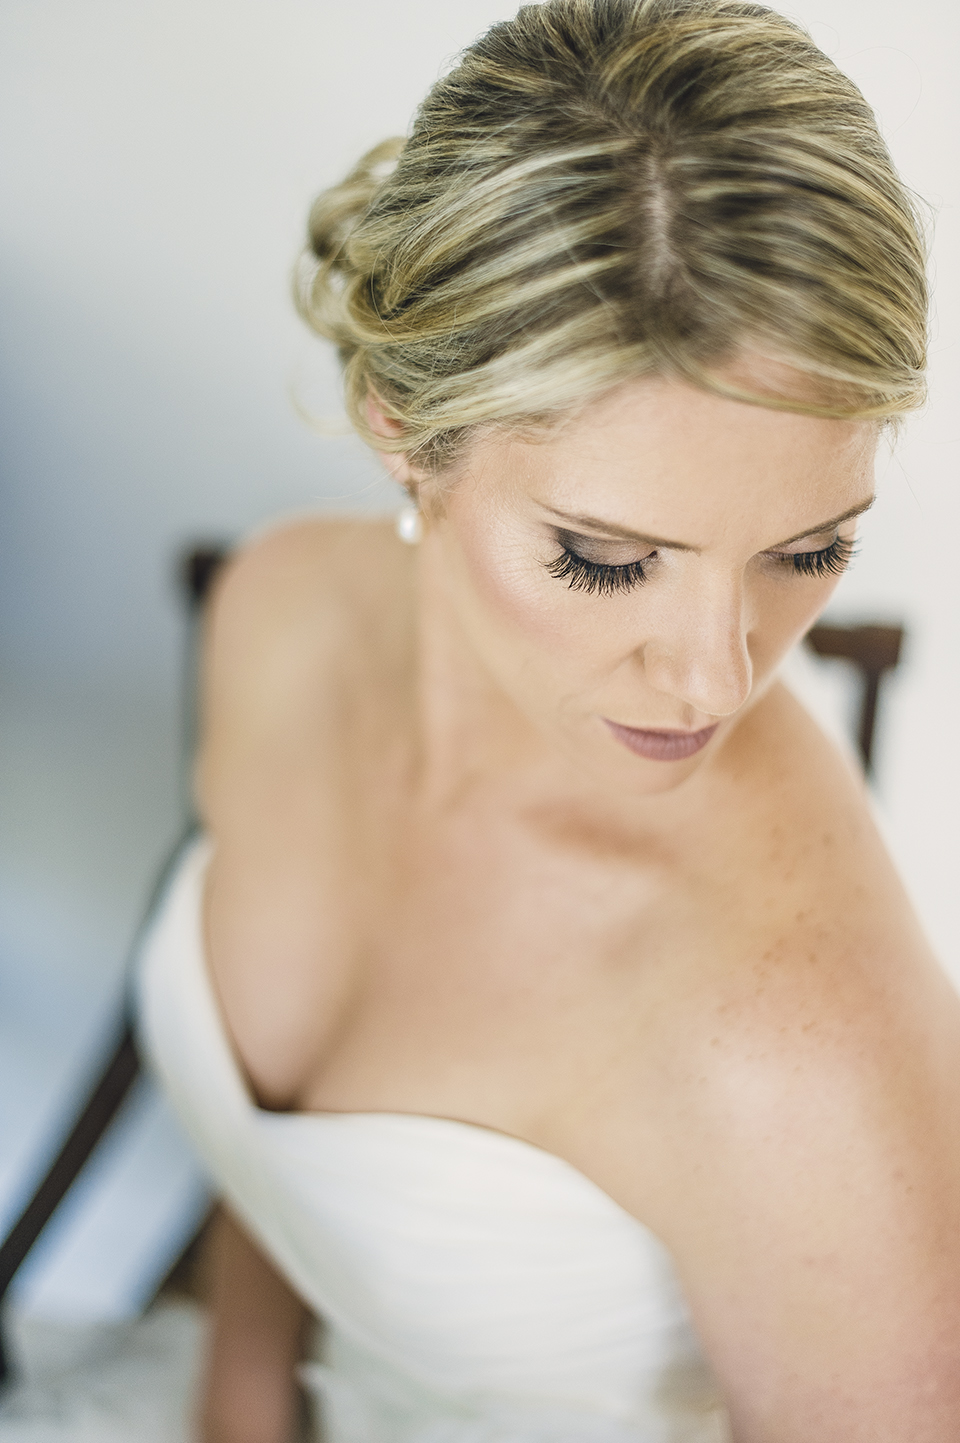 RyanParker_Photographer_Wedding_Portfolio_DSC_1338.jpg